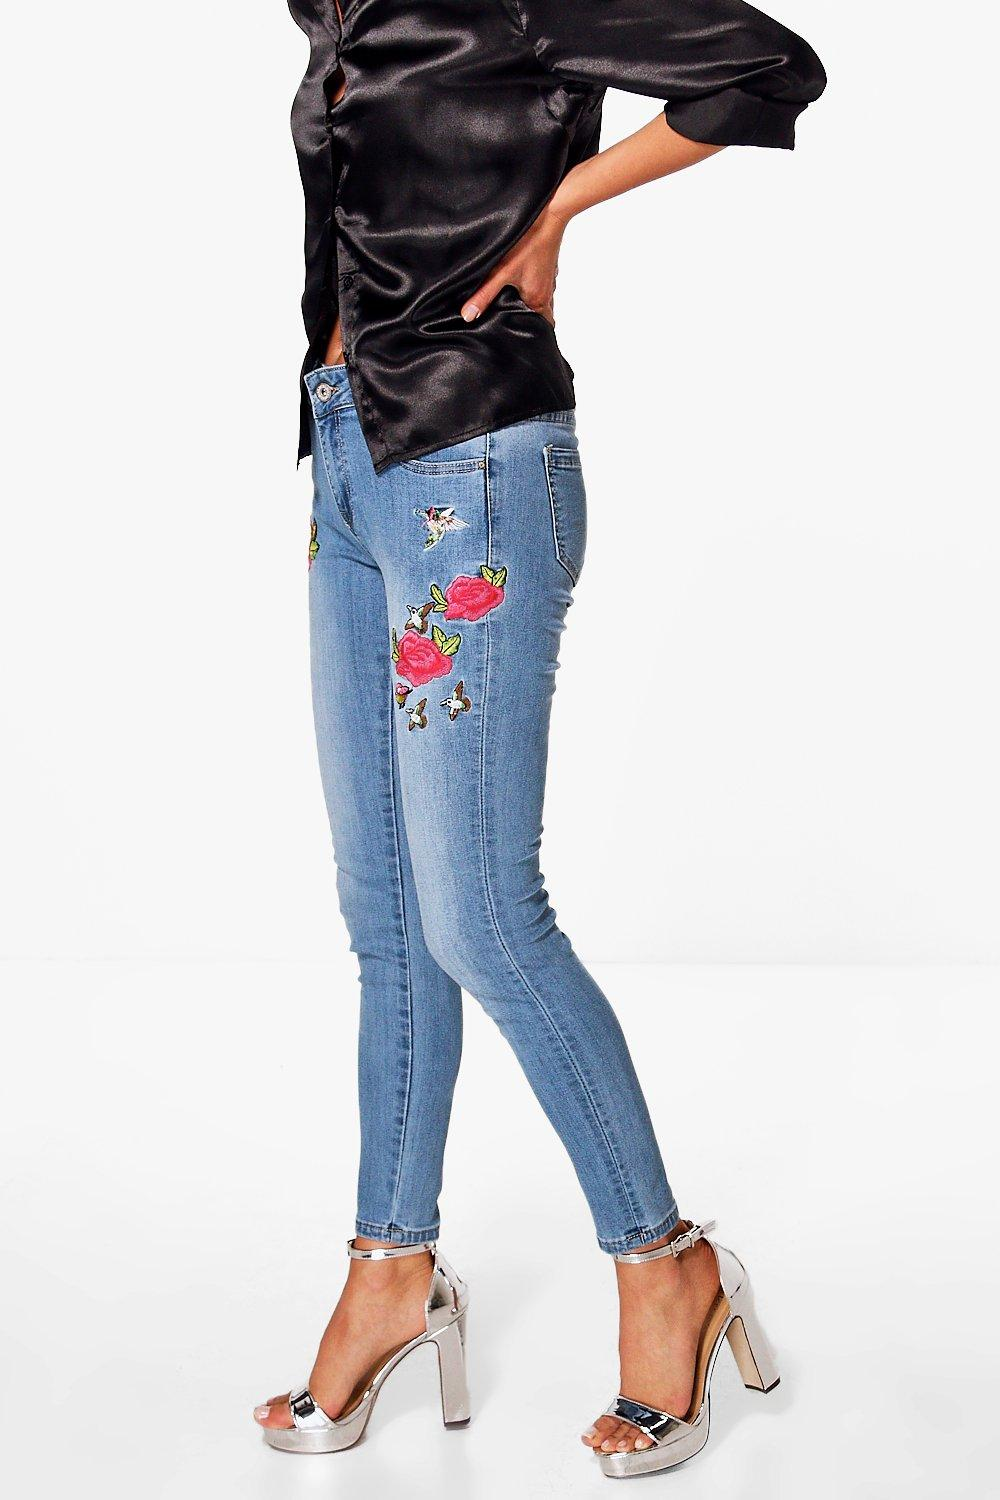 6a2944a708f8b Sofia Floral Embroidered Skinny Jeans. Hover to zoom